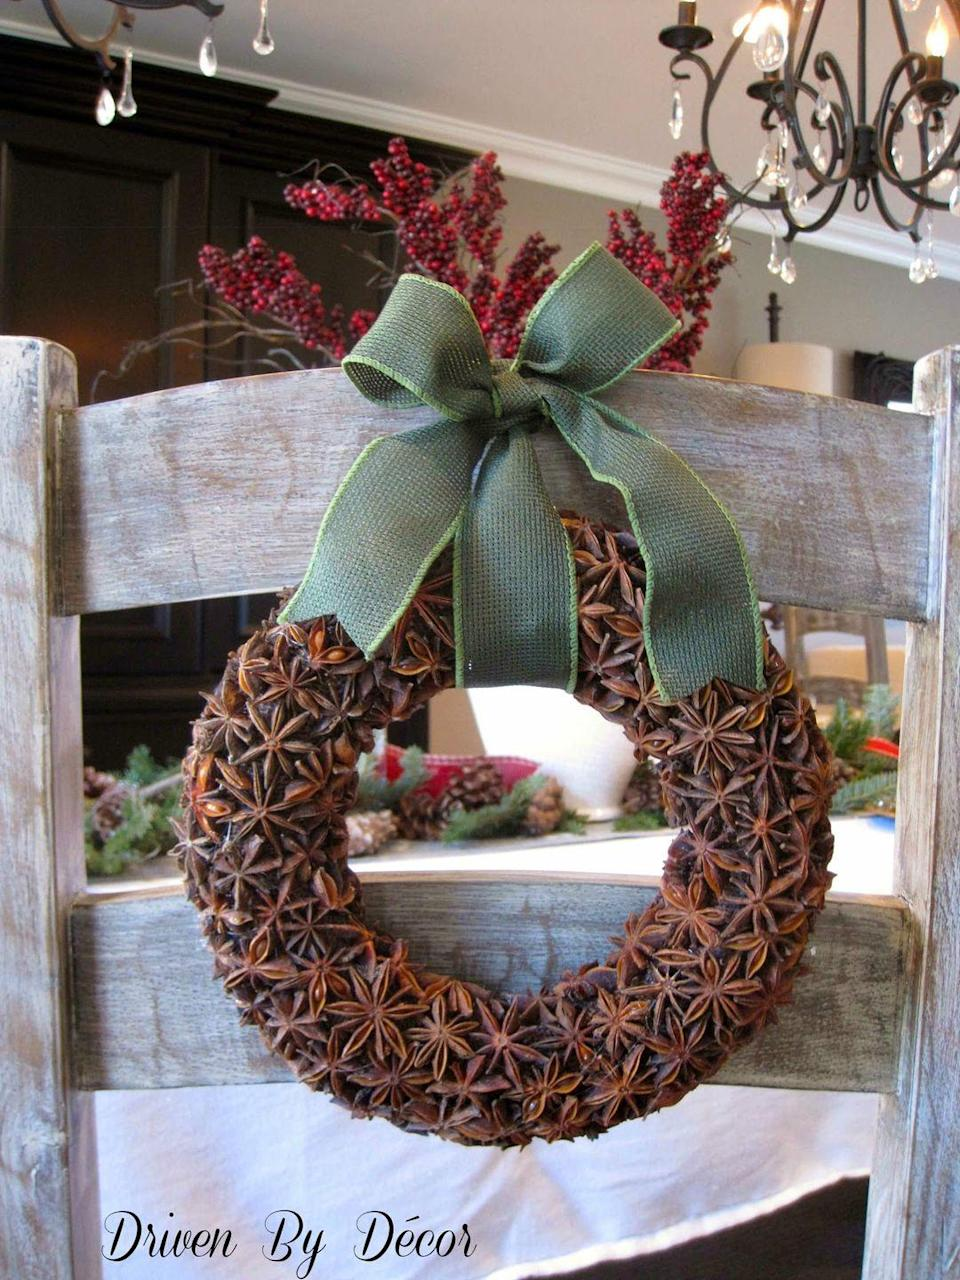 "<p>Recreate this sweet smelling wreath with star anise. </p><p>See more at <a href=""http://www.drivenbydecor.com/2012/12/holiday-decorating-diy-star-anise.html"" rel=""nofollow noopener"" target=""_blank"" data-ylk=""slk:Driven By Decor"" class=""link rapid-noclick-resp"">Driven By Decor</a>. </p>"